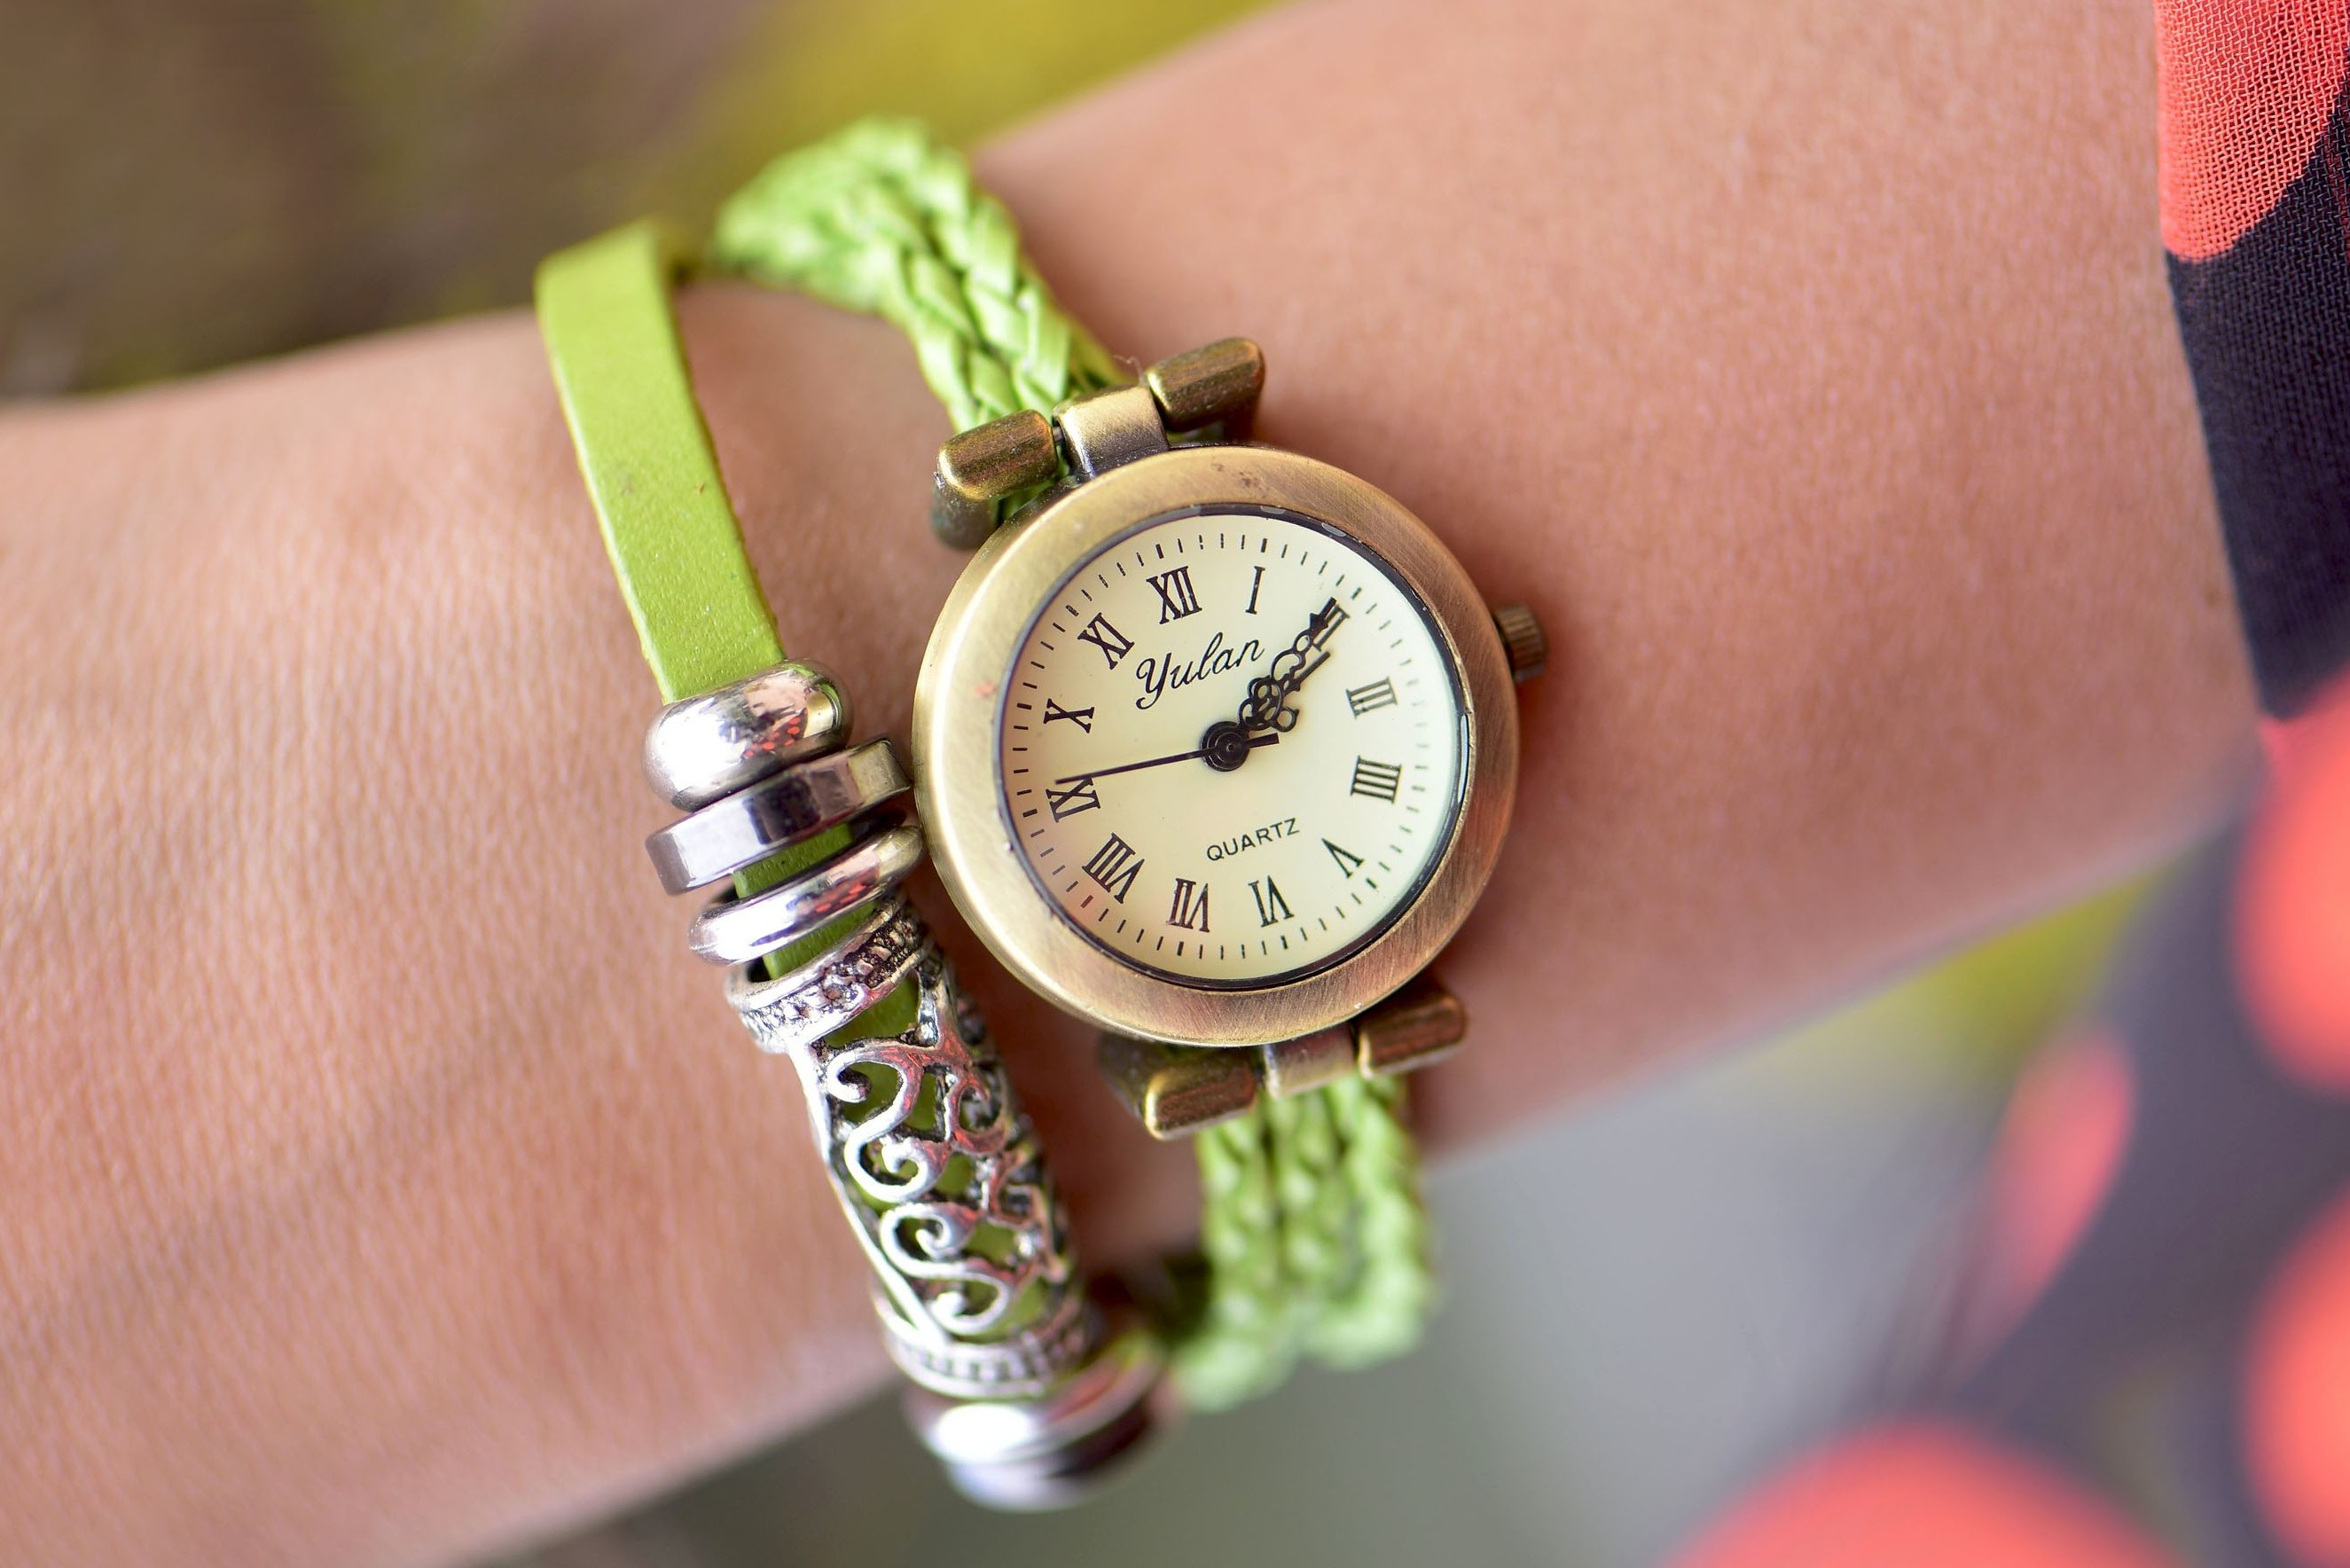 Womens - The Bevel Is in the Details Watch